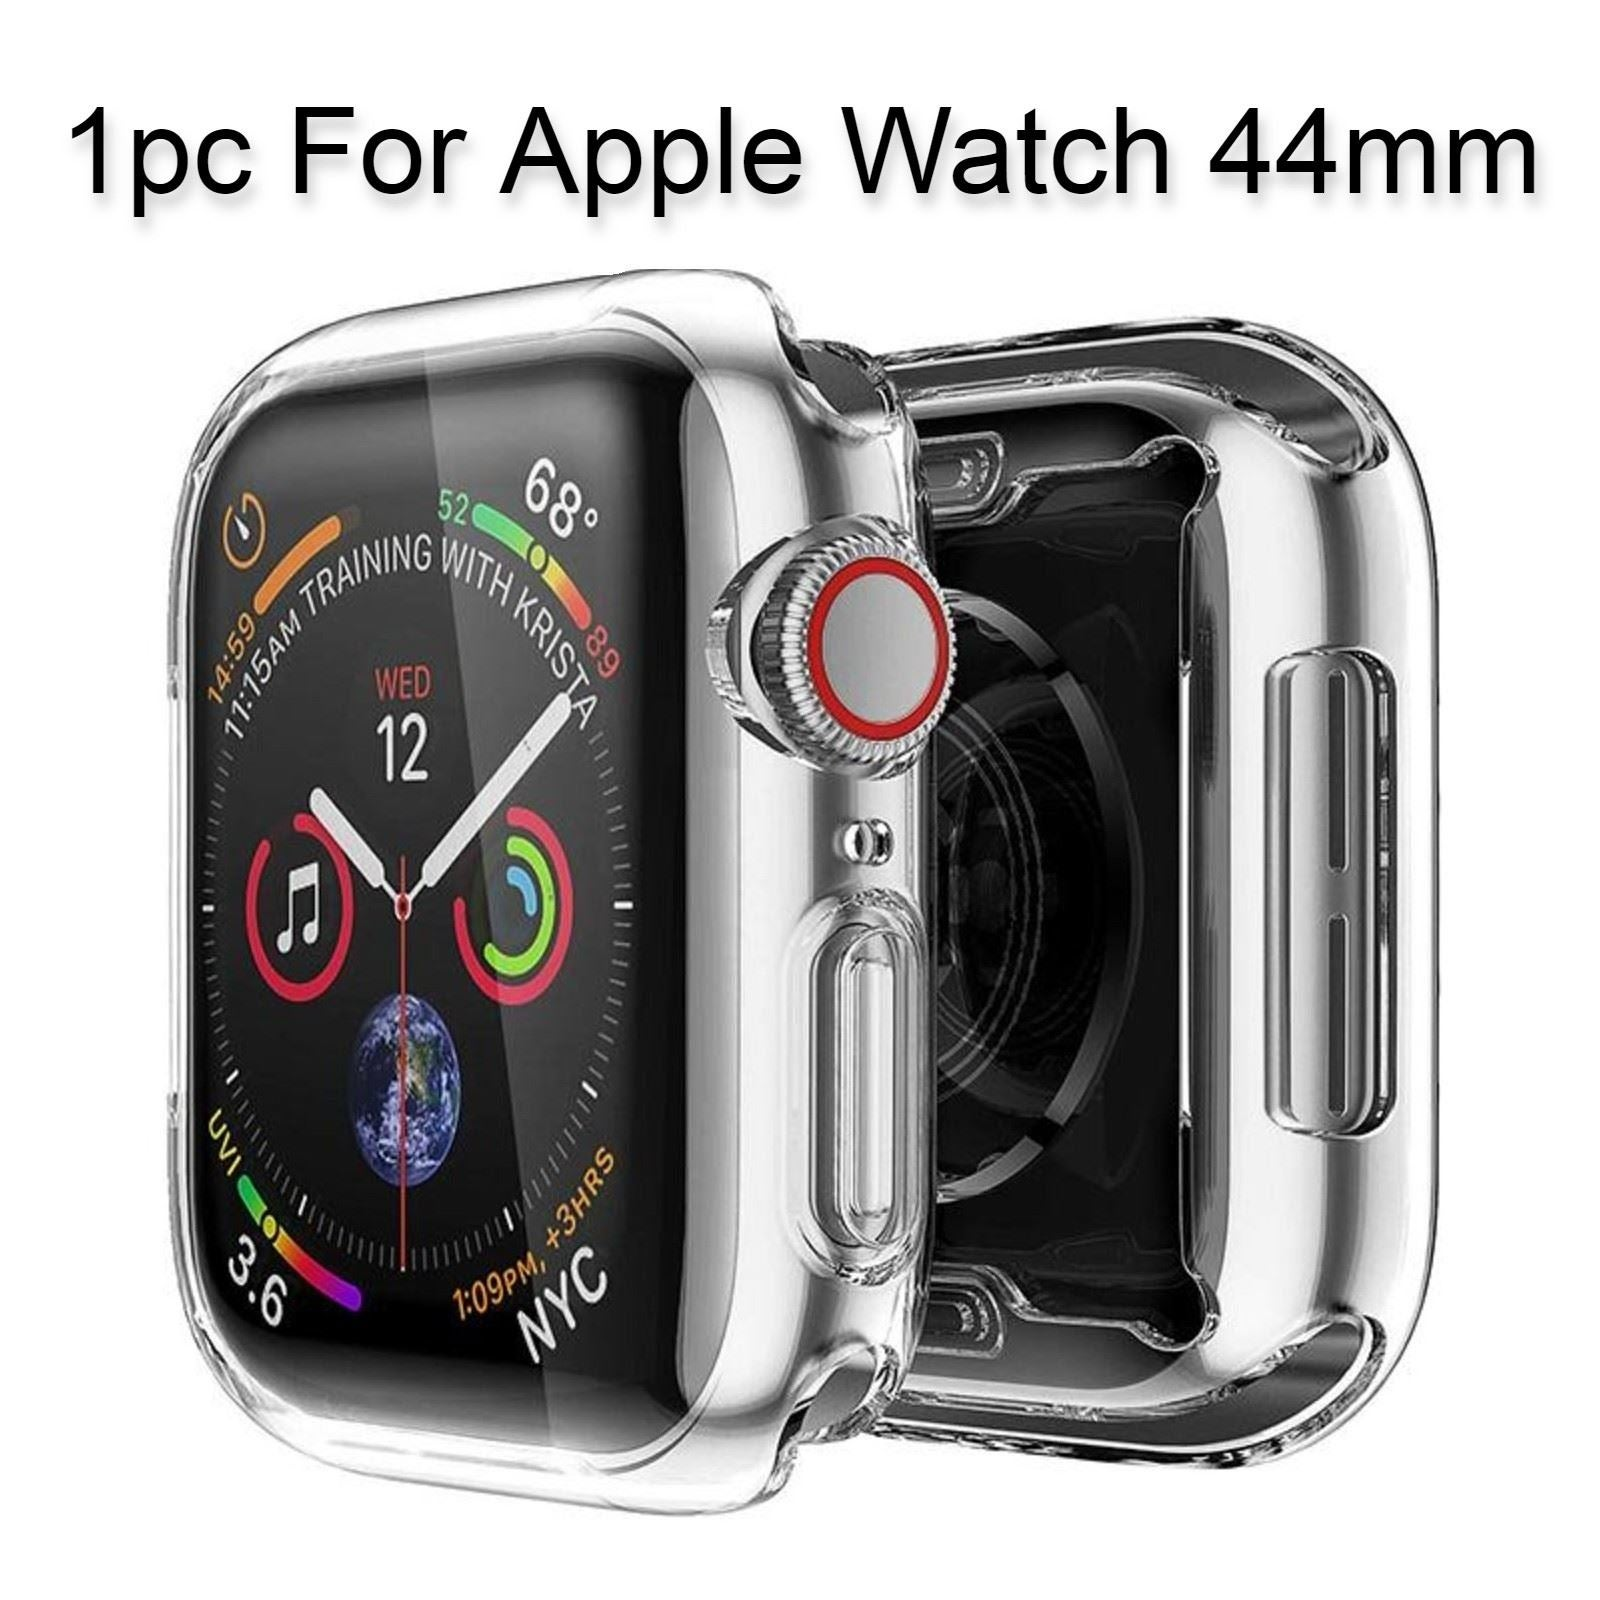 1pc For Apple Watch 44mm Clear Case